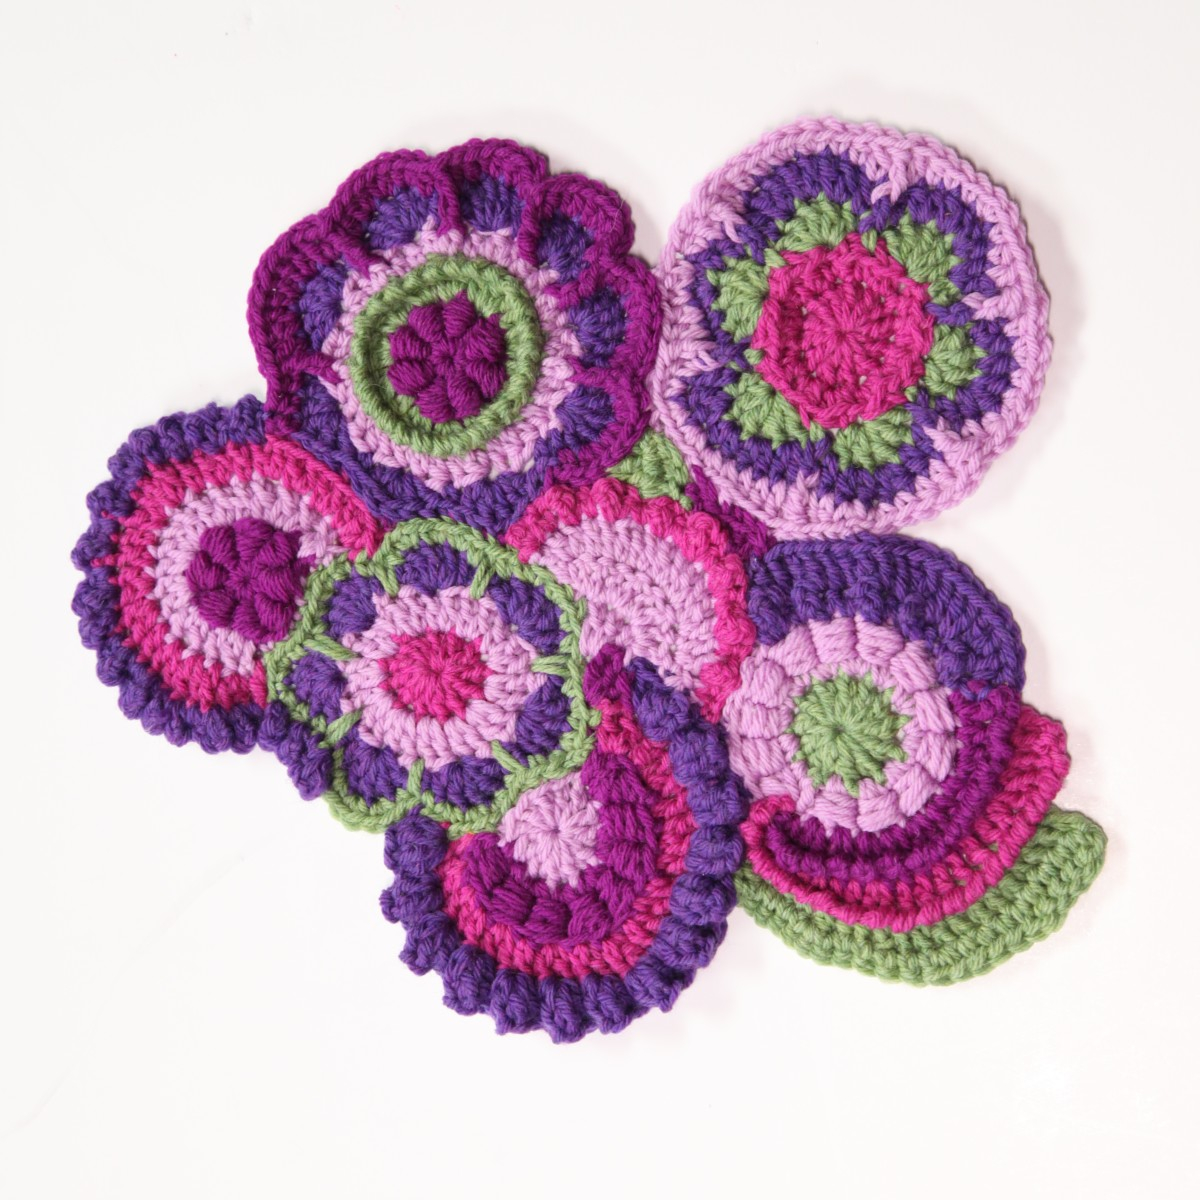 These Crochet Projects Ideas Will Blow Your Mind How To Freeform Crochet Beginners Tips